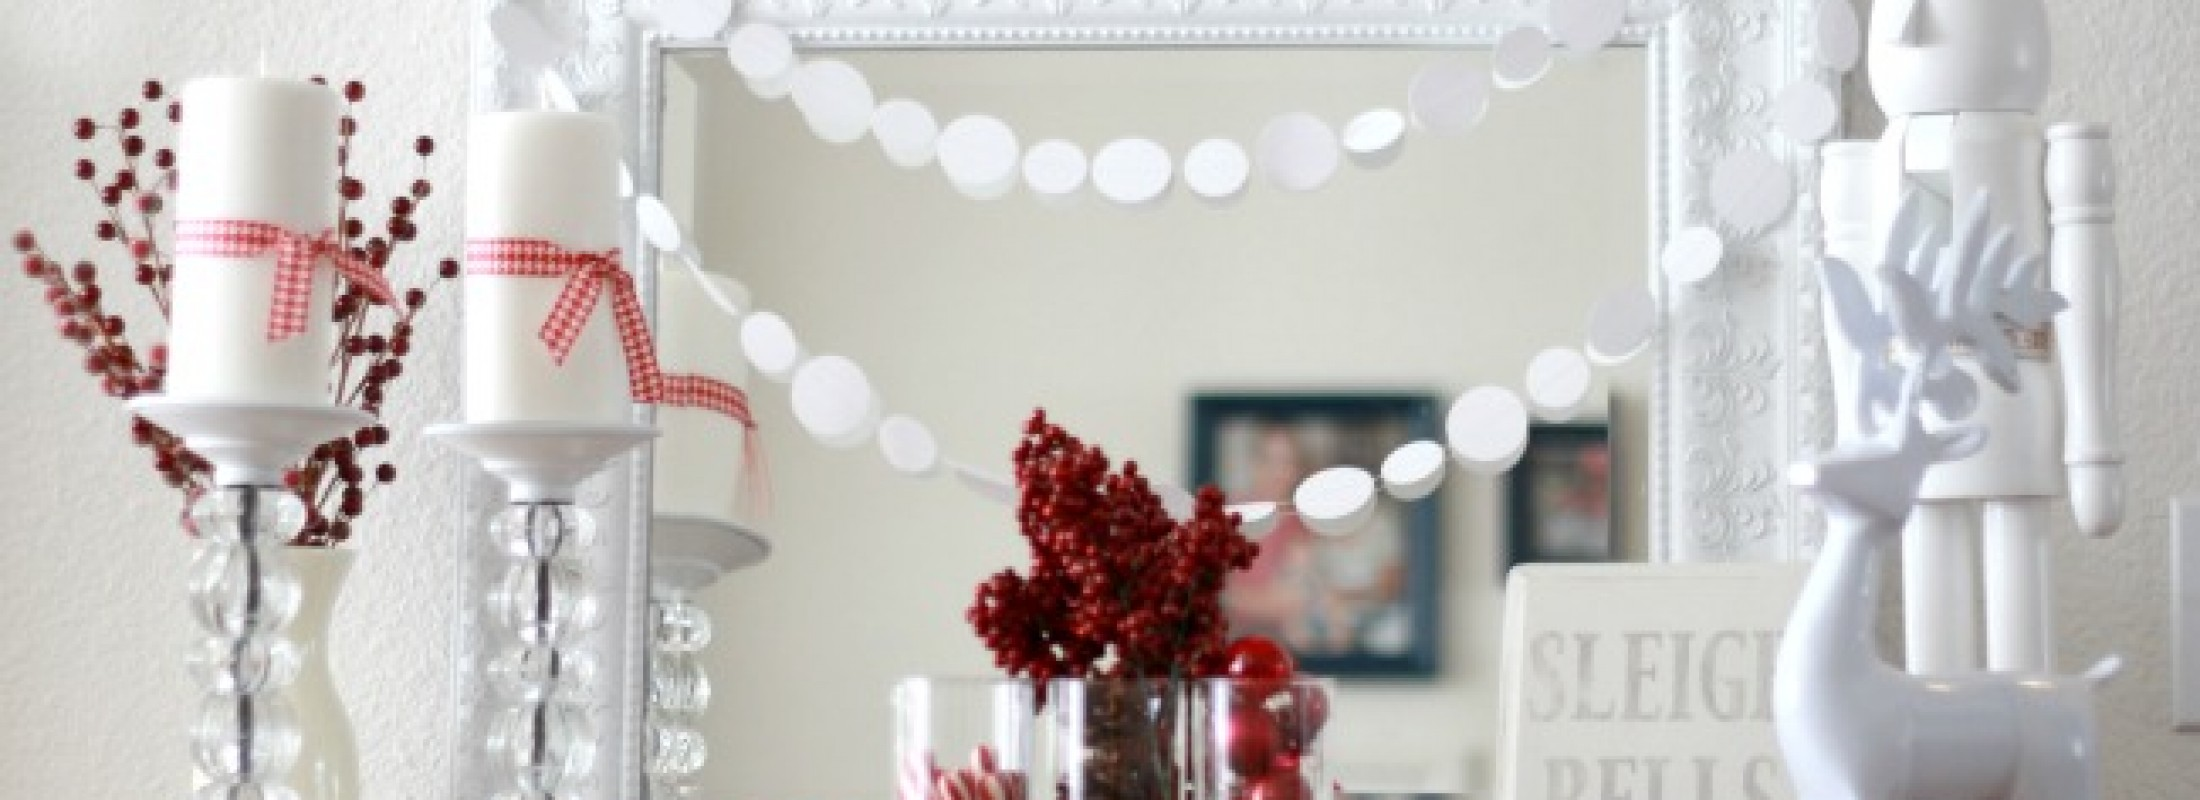 Exceptional Winter Wonderland Decorating Ideas For Christmas Part - 13: Red And White Christmas Decorations. Photo Credit: Making Home Base